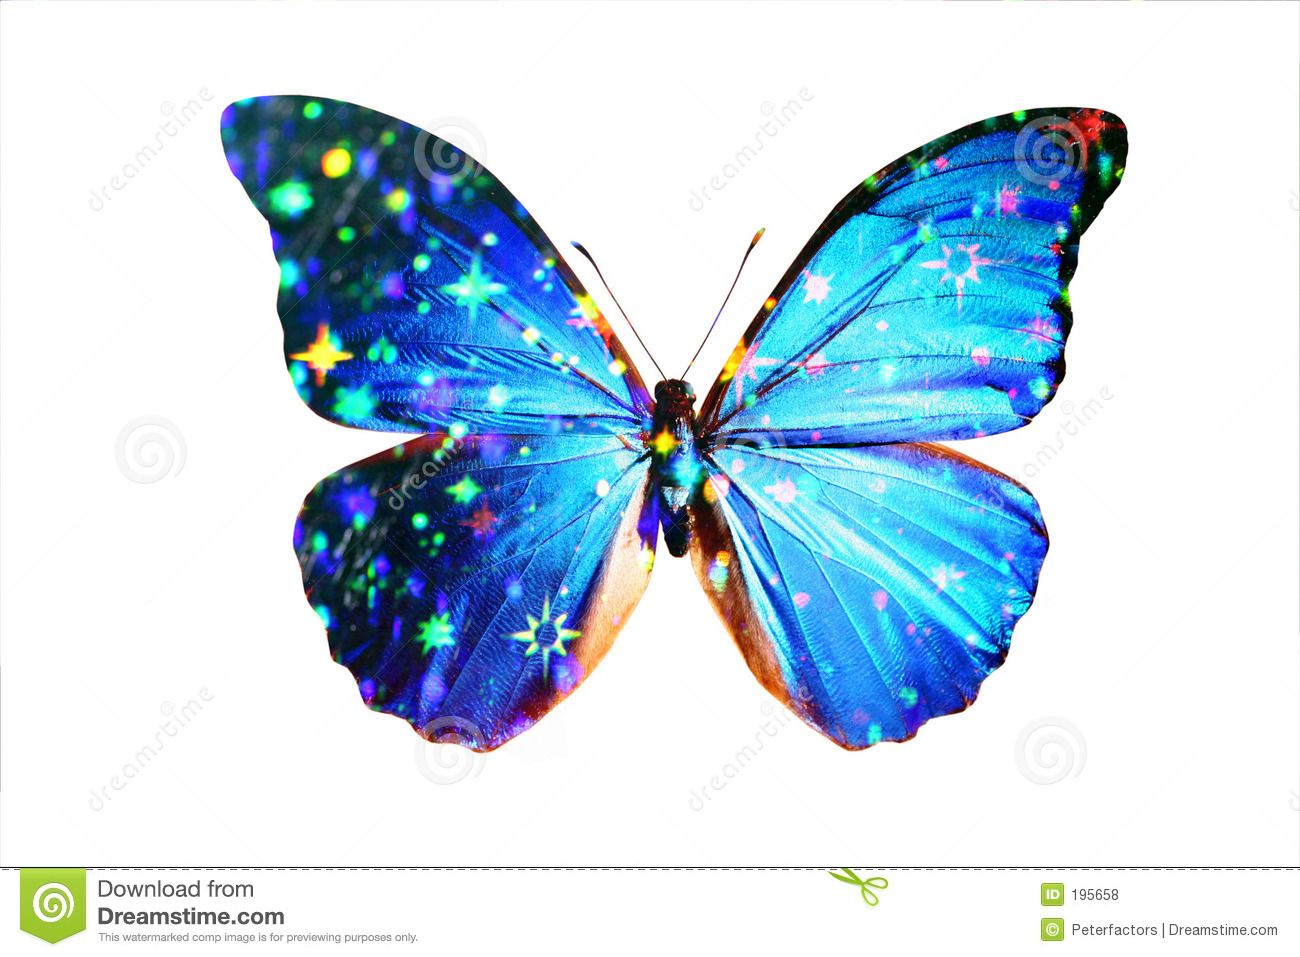 Pin Blue Morpho Butterfly Tattoo Meaning As Performers on Pinterest